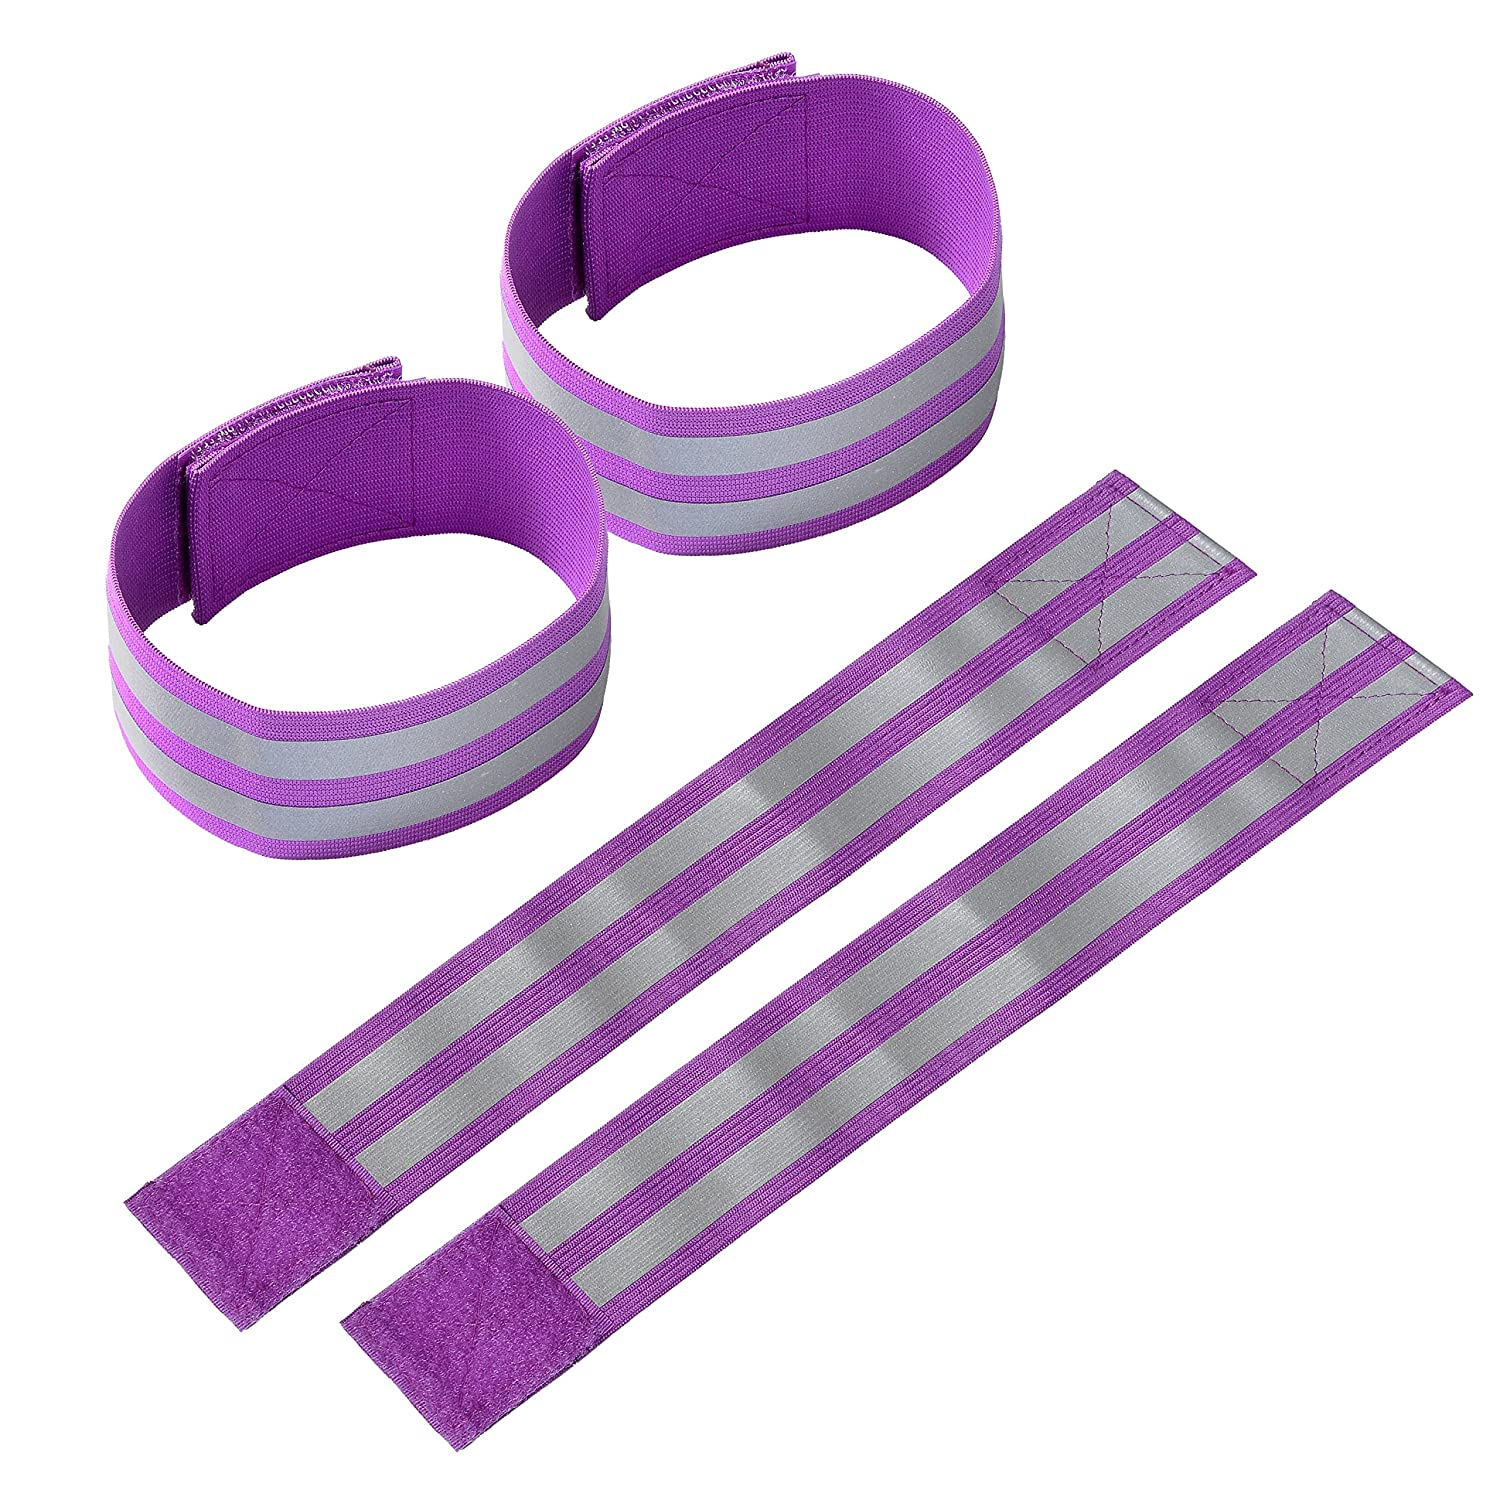 Techion Reflective Fabric Armband//Ankle Bands with Two Reflective Strips for Cycling//Biking Walking//Jogging Running Gear and Outdoor Sports